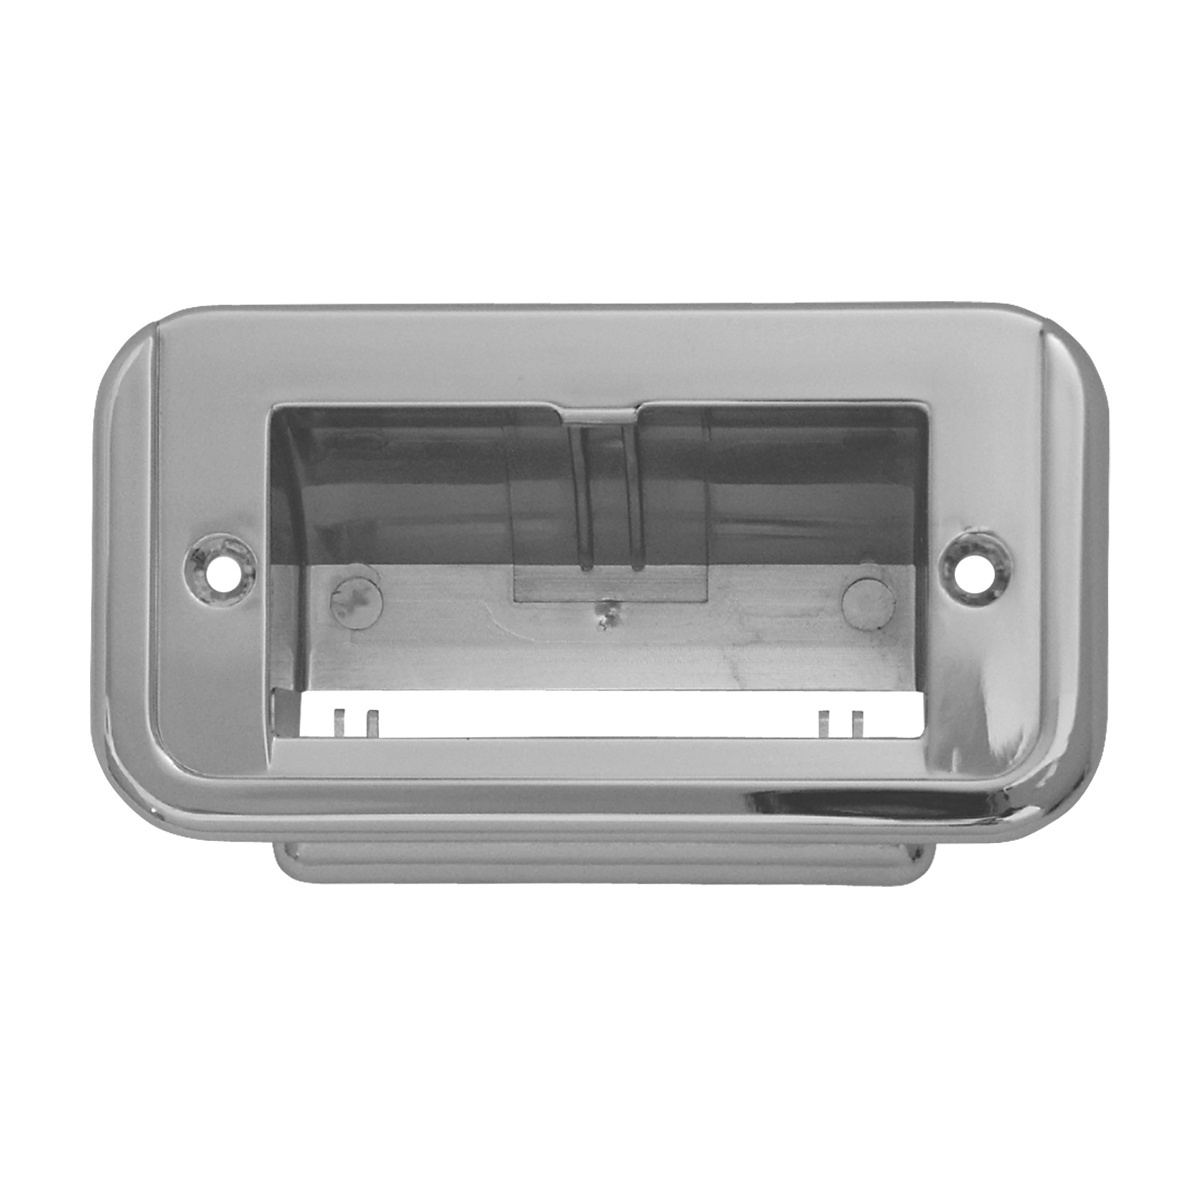 67931 Ash Tray Trim for Peterbilt 2006 & Later